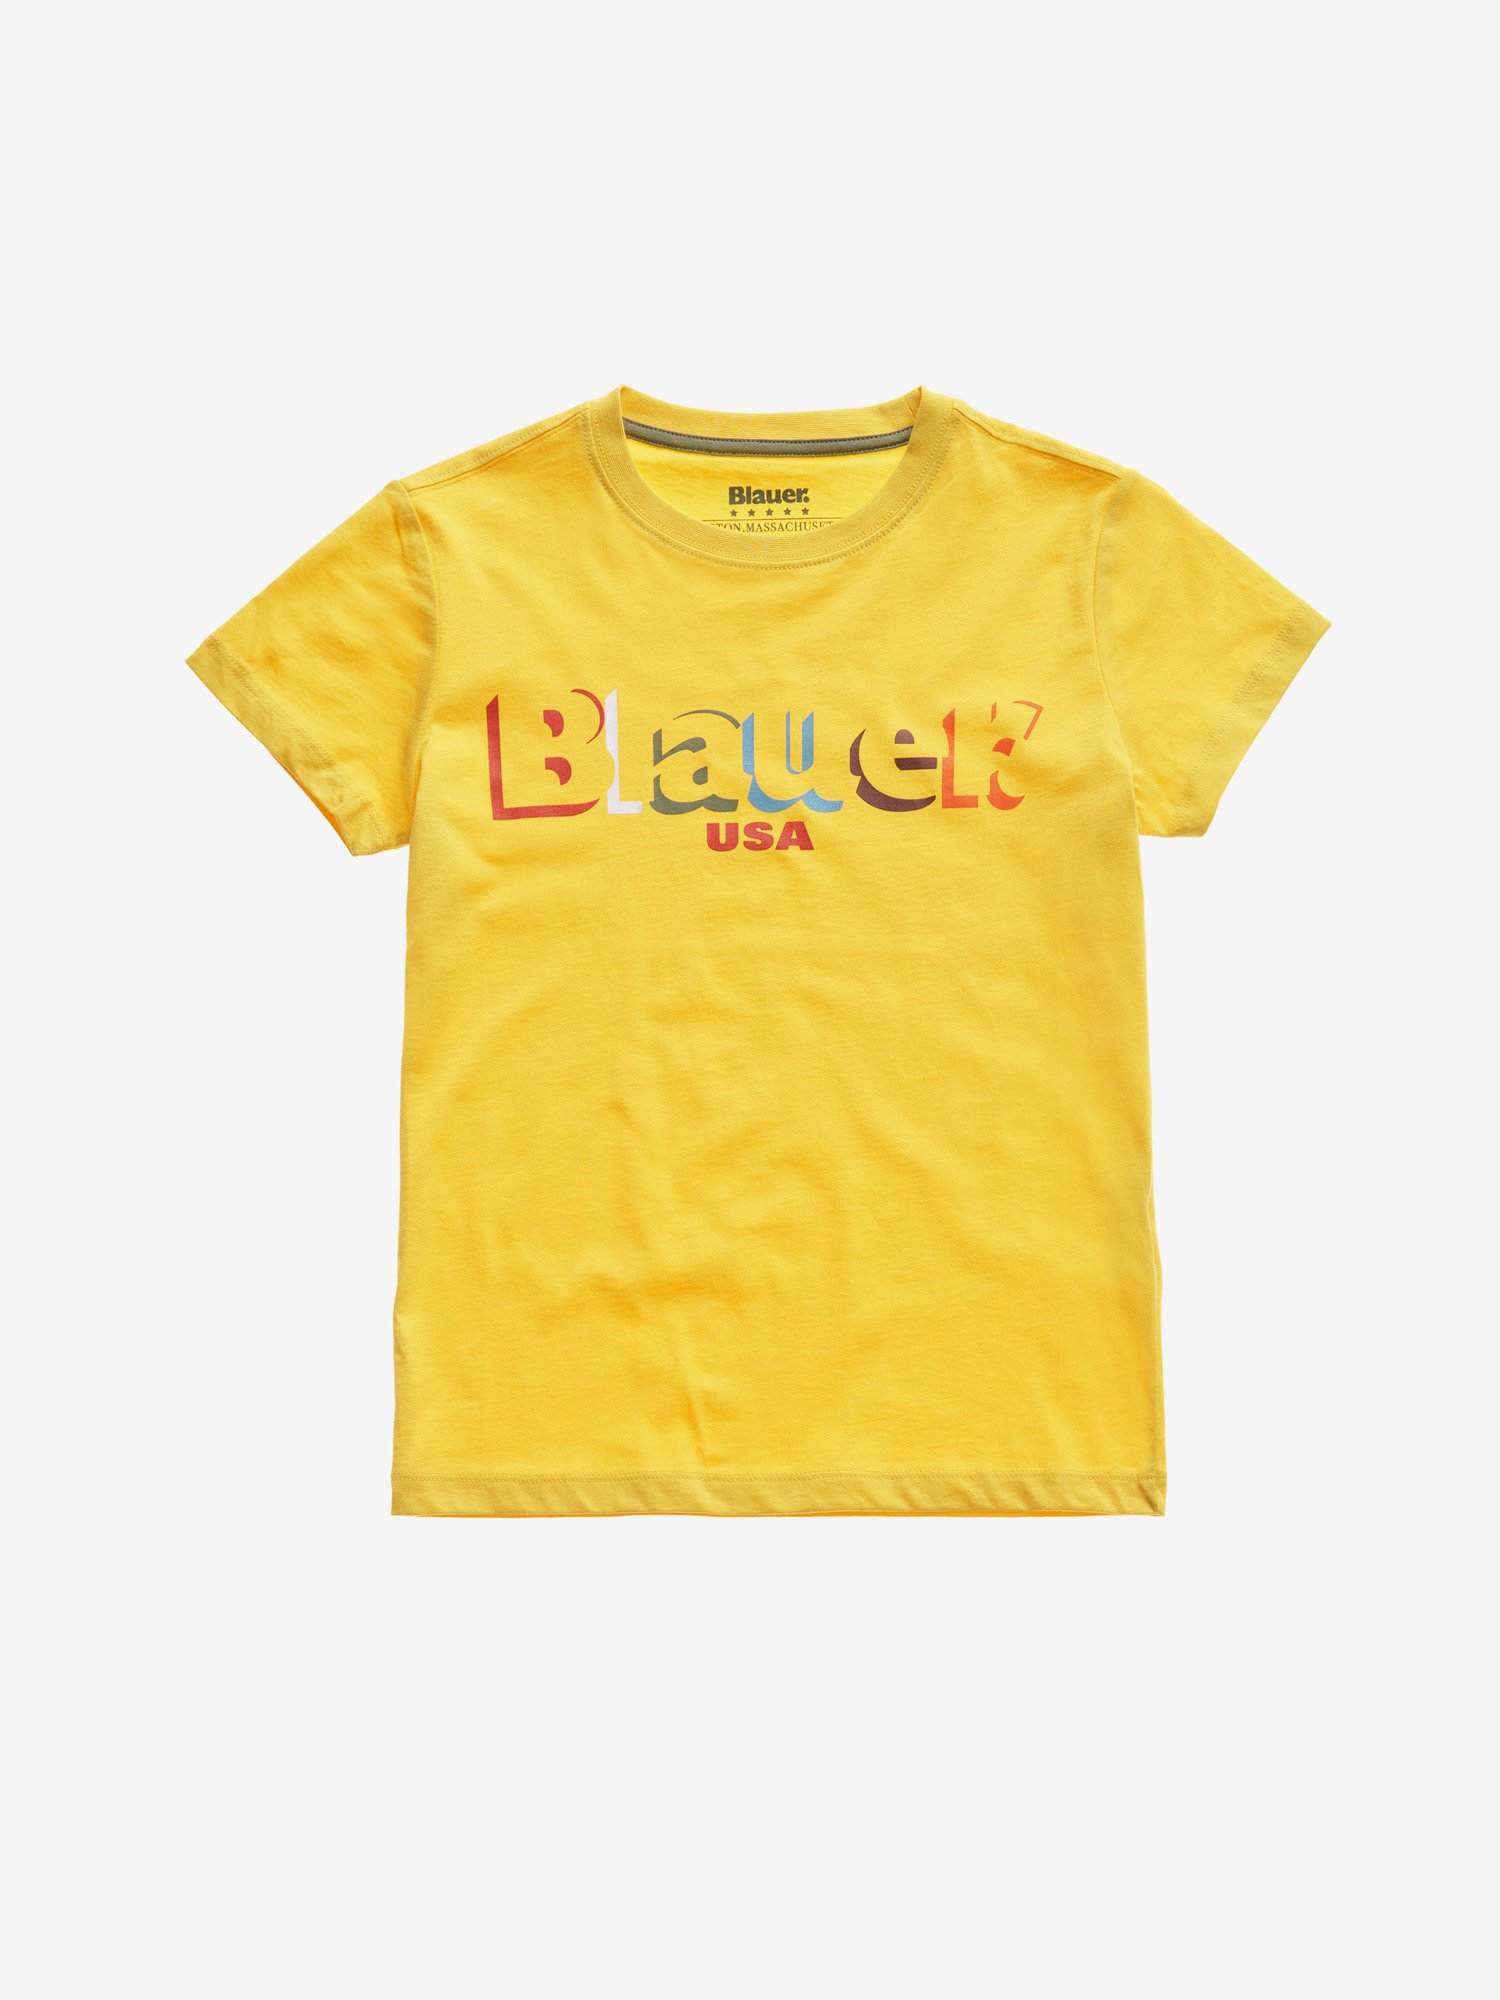 Blauer - JUNIOR COLOURFUL BLAUER T-SHIRT - Canary - Blauer